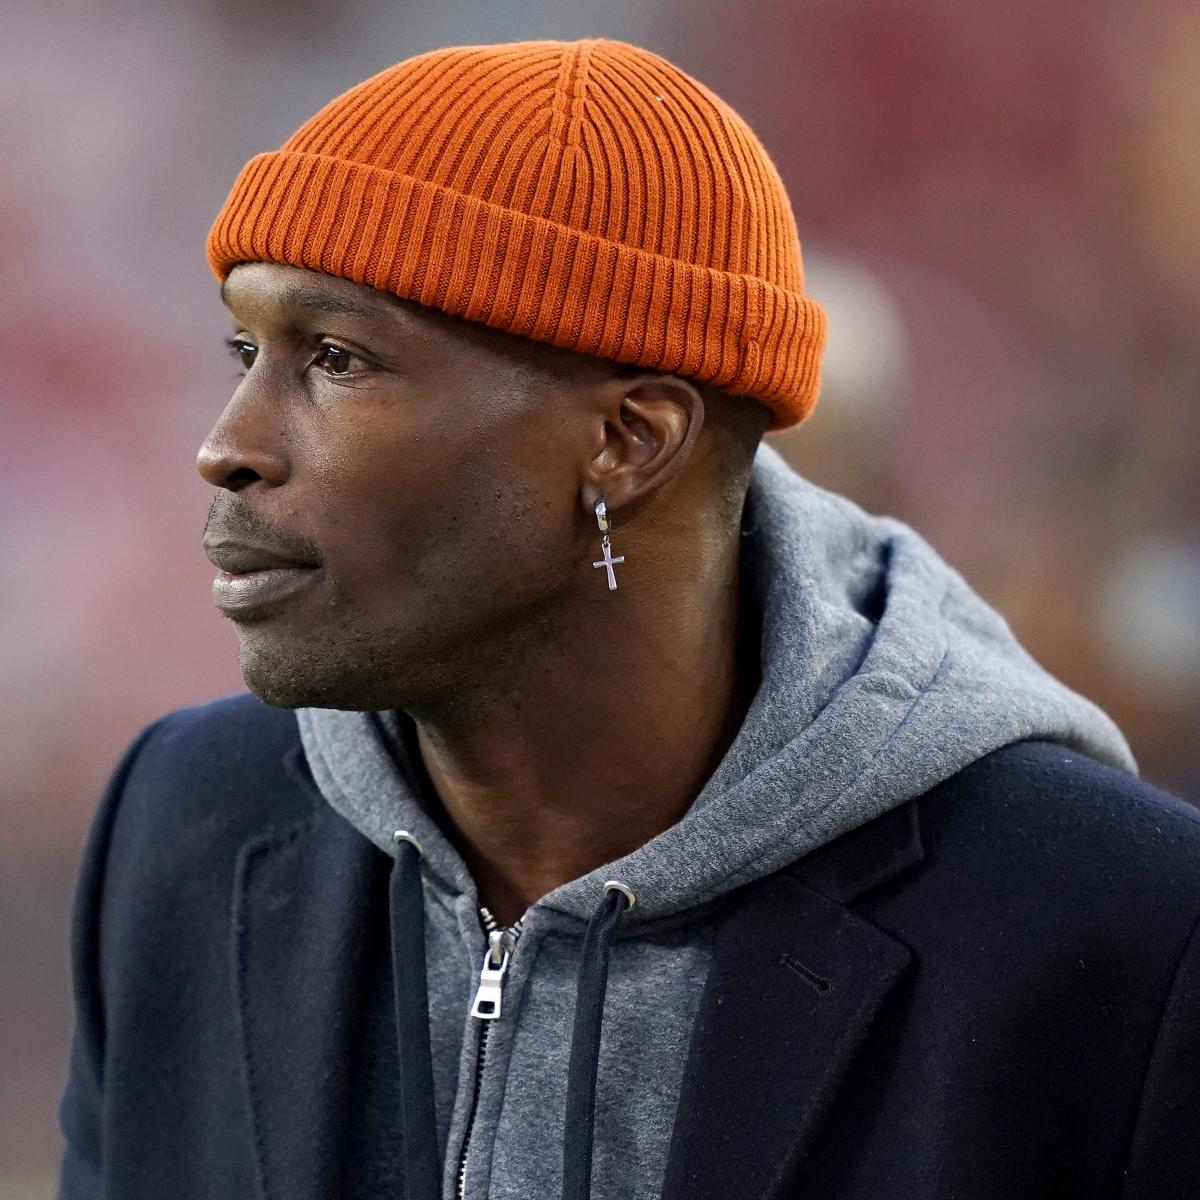 Chad Johnson Offers to Help Ohio Woman Avoid Eviction by Paying Her Rent